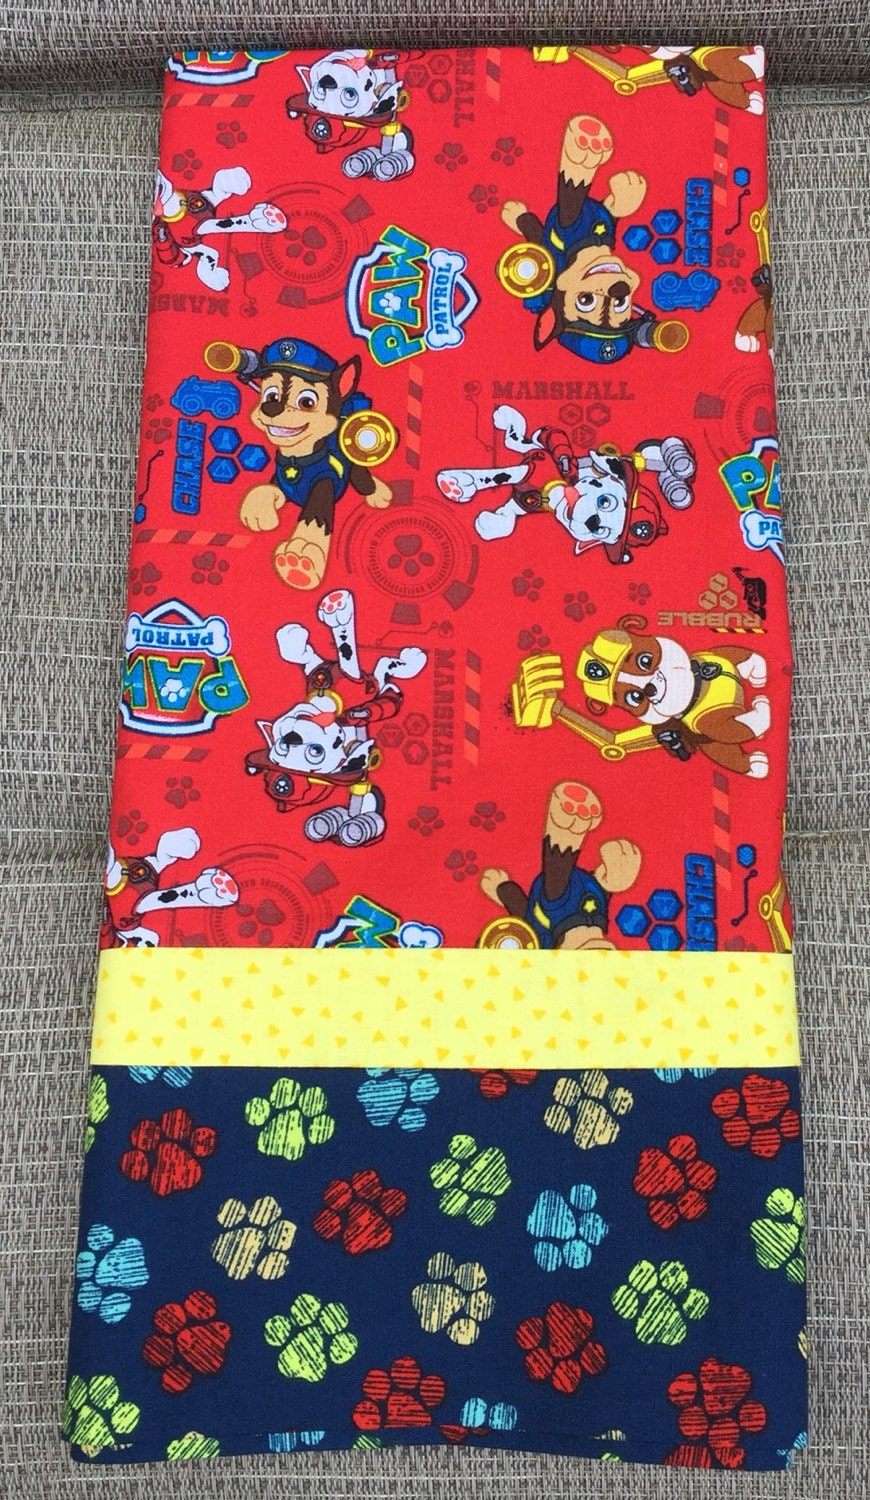 It's just a picture of Dashing Paw Patrol Borders